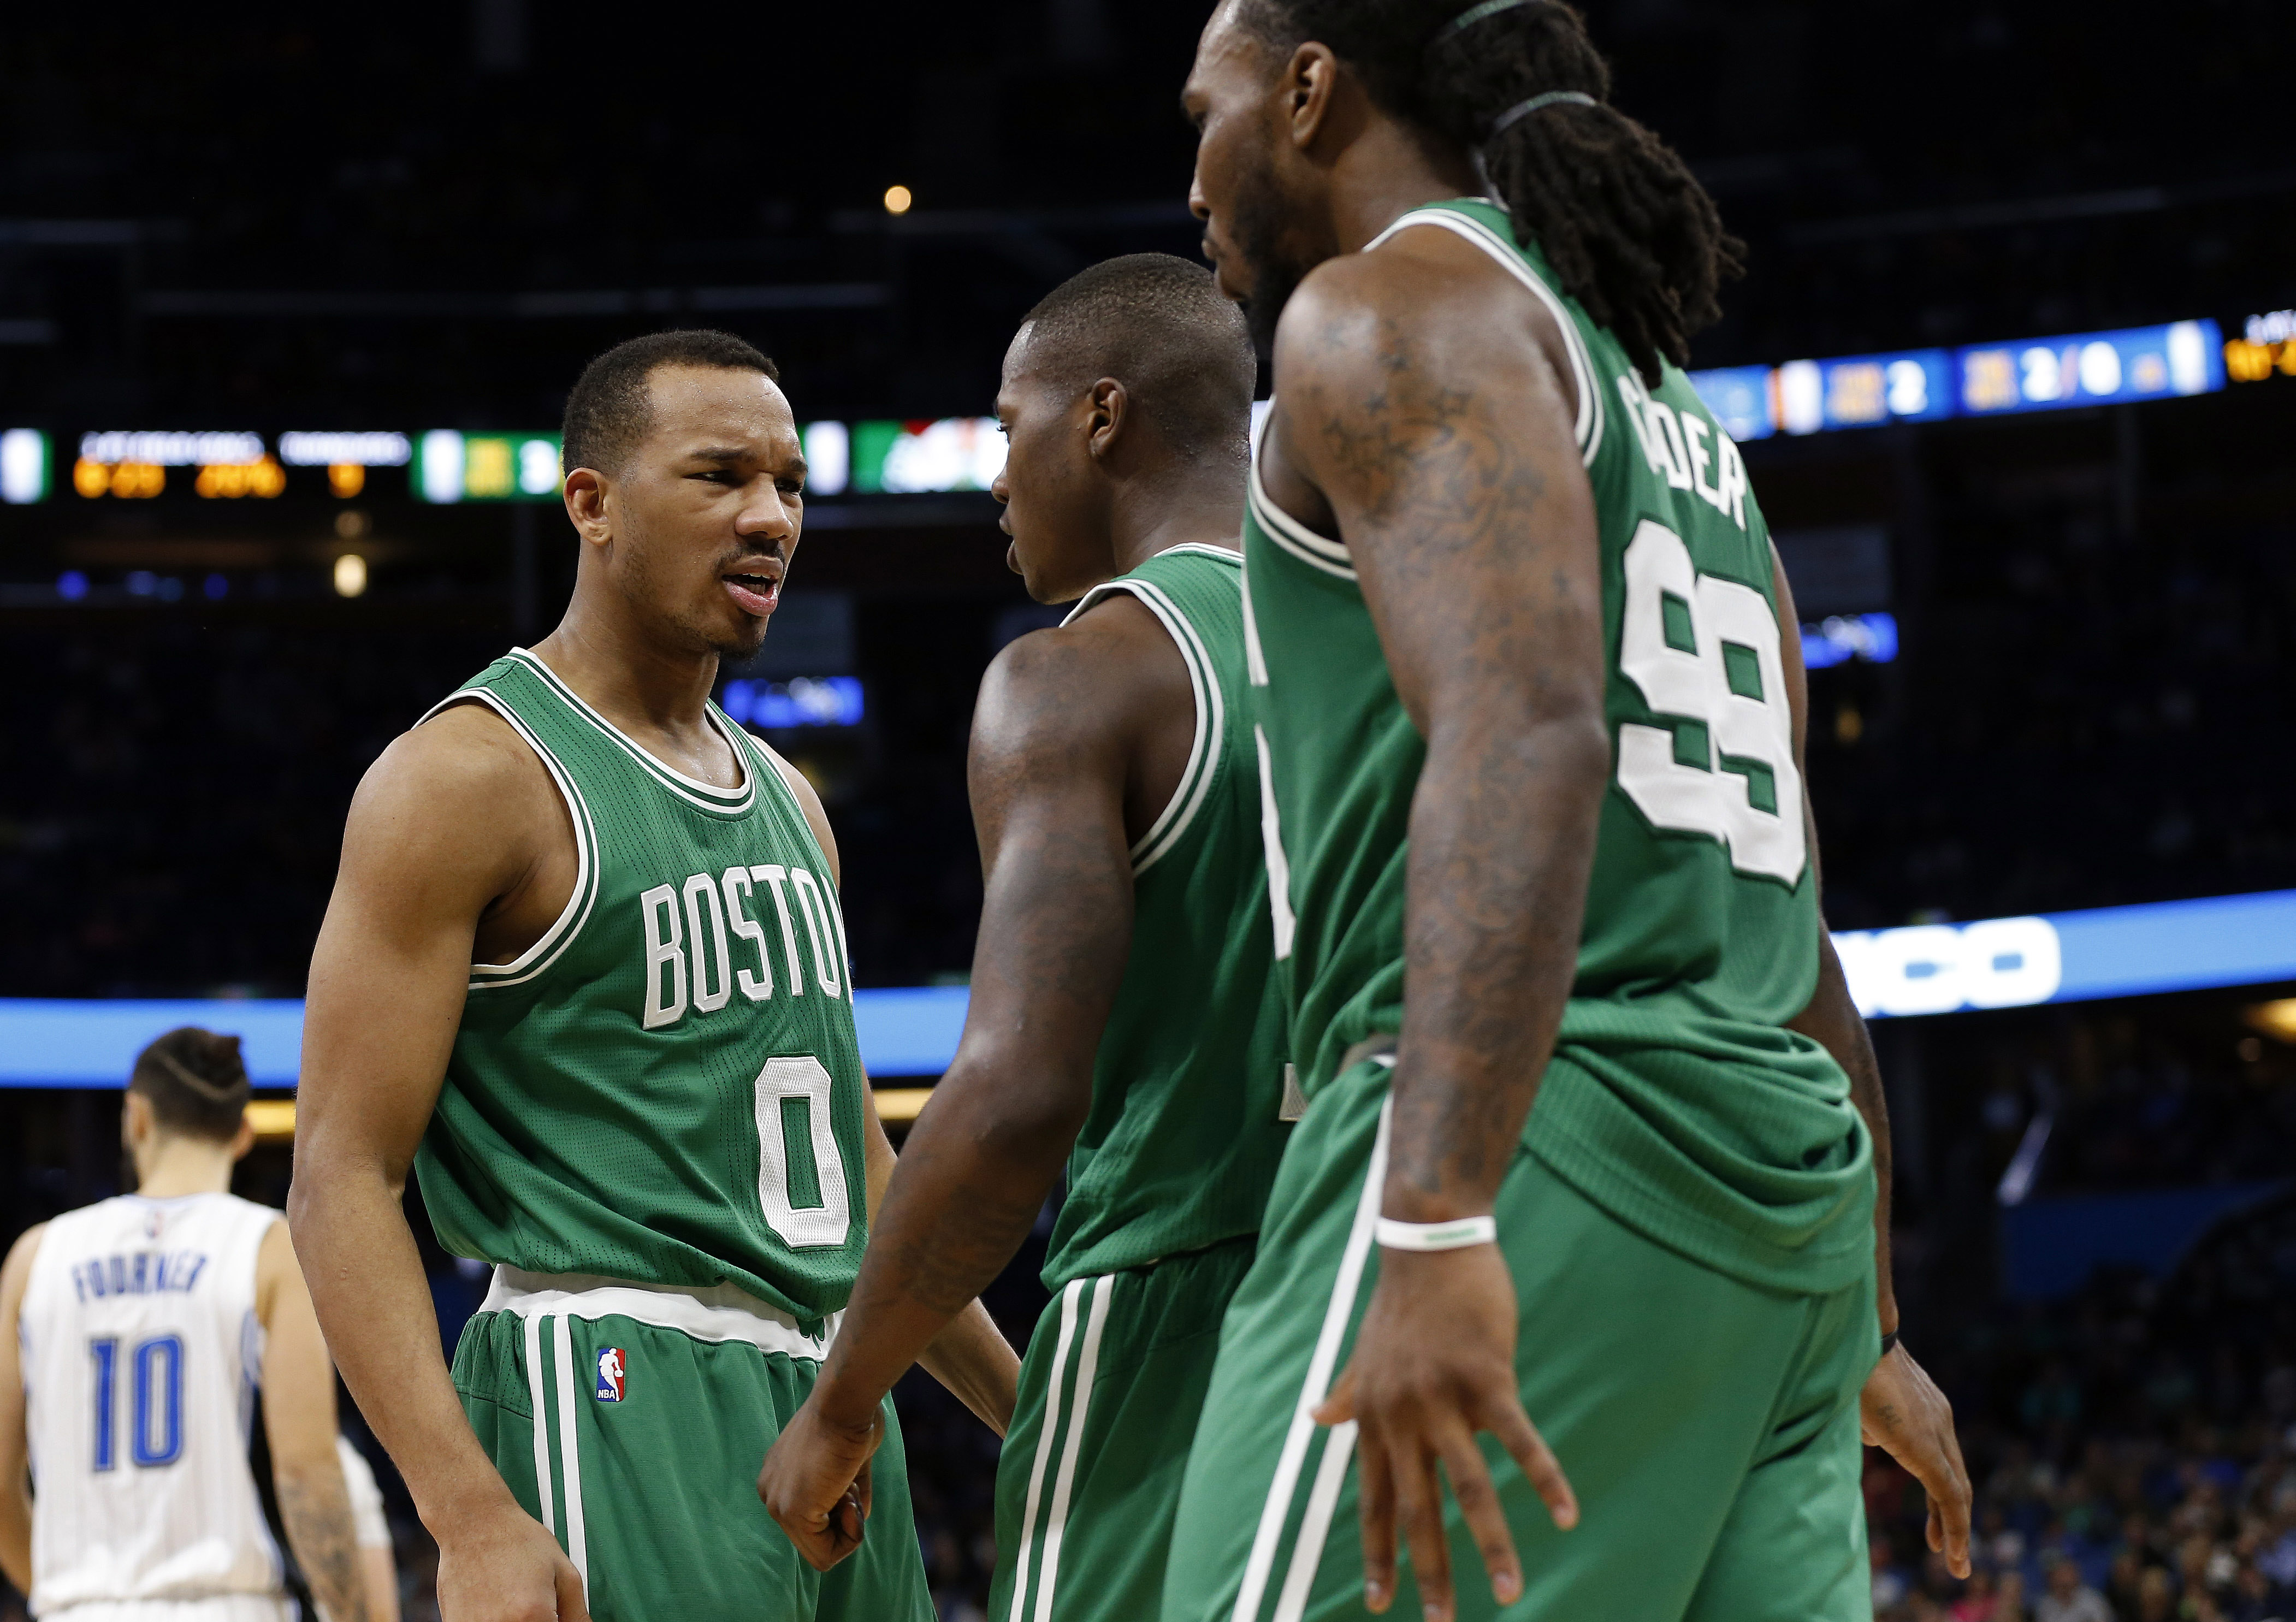 Dec 7, 2016; Orlando, FL, USA; Boston Celtics guard Avery Bradley (0) reacts with guard Terry Rozier (12) and forward Jae Crowder (99) against the Orlando Magic during the second half at Amway Center. Boston Celtics defeated the Orlando Magic 117-87. Mandatory Credit: Kim Klement-USA TODAY Sports